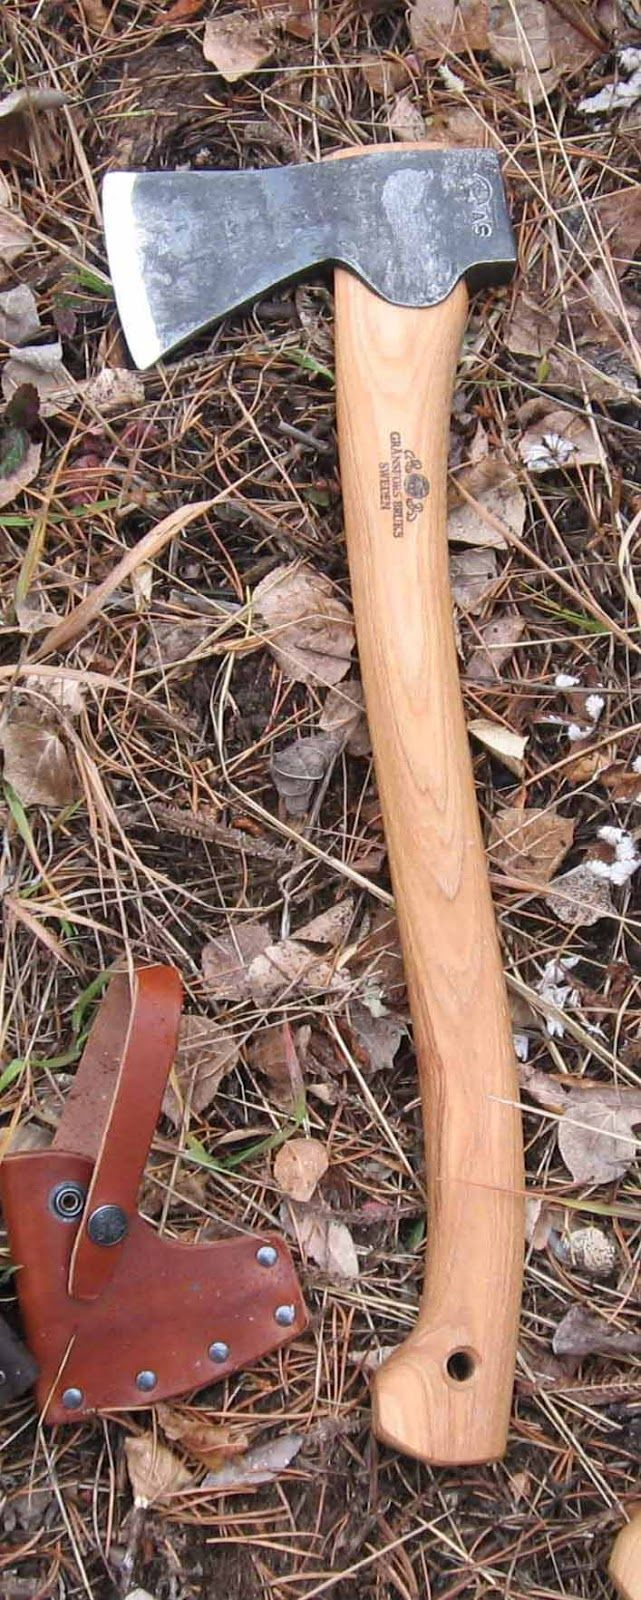 Img 0660 Small Forest Axe 2 Jpg 641 1600 Bushcraft Survival Axe